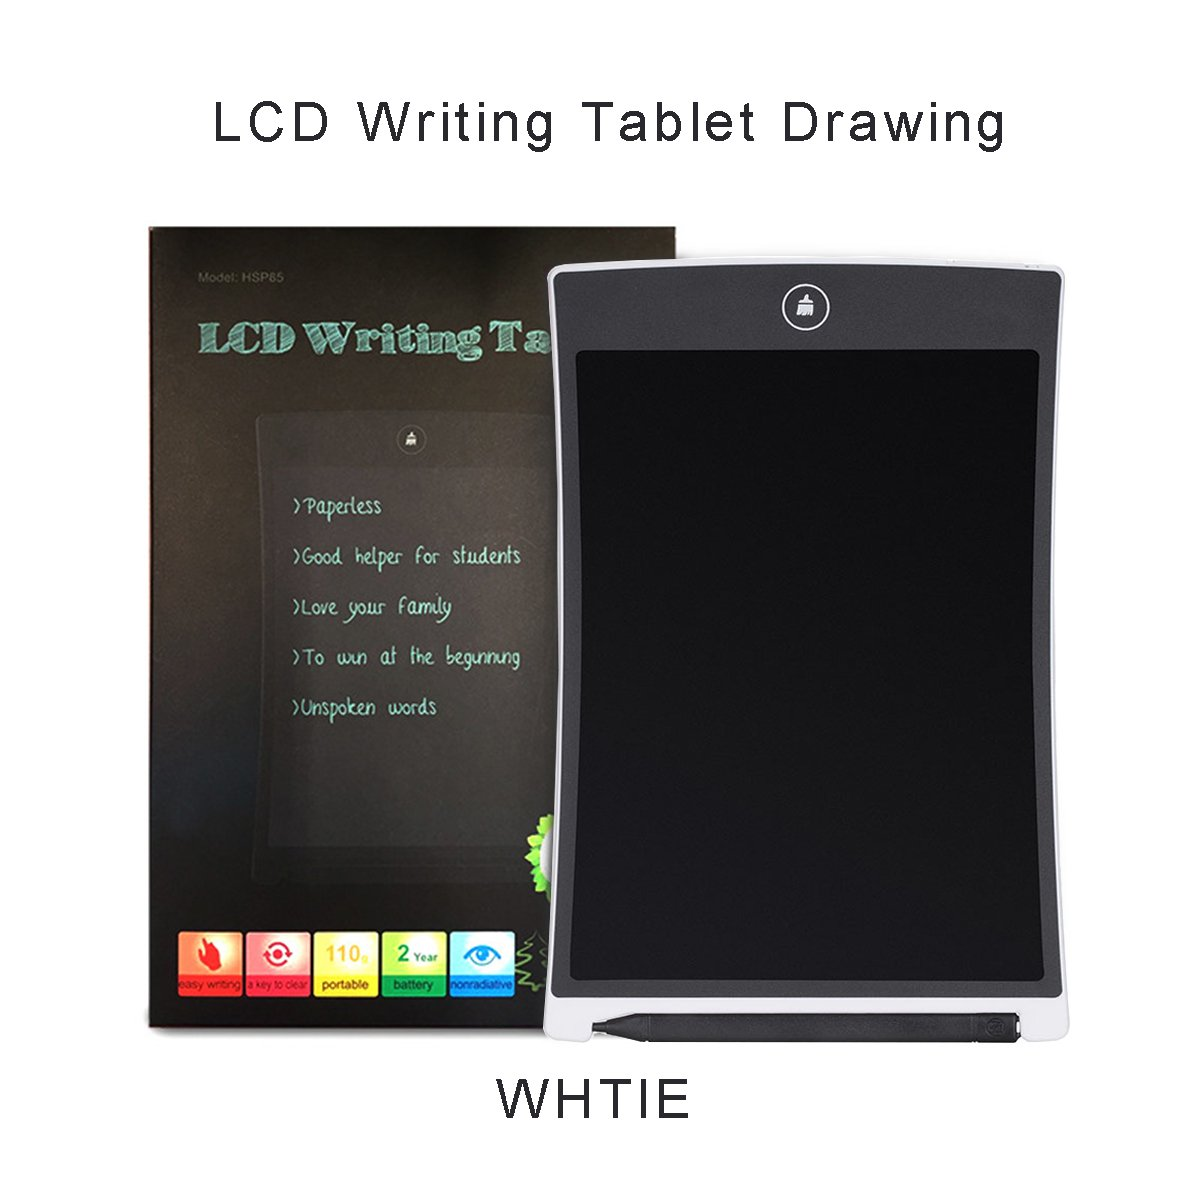 8.5″ Digital LCD Writing Pad Tablet eWriter Electronic Drawing Graphics Board Notepad with Stylus (White)